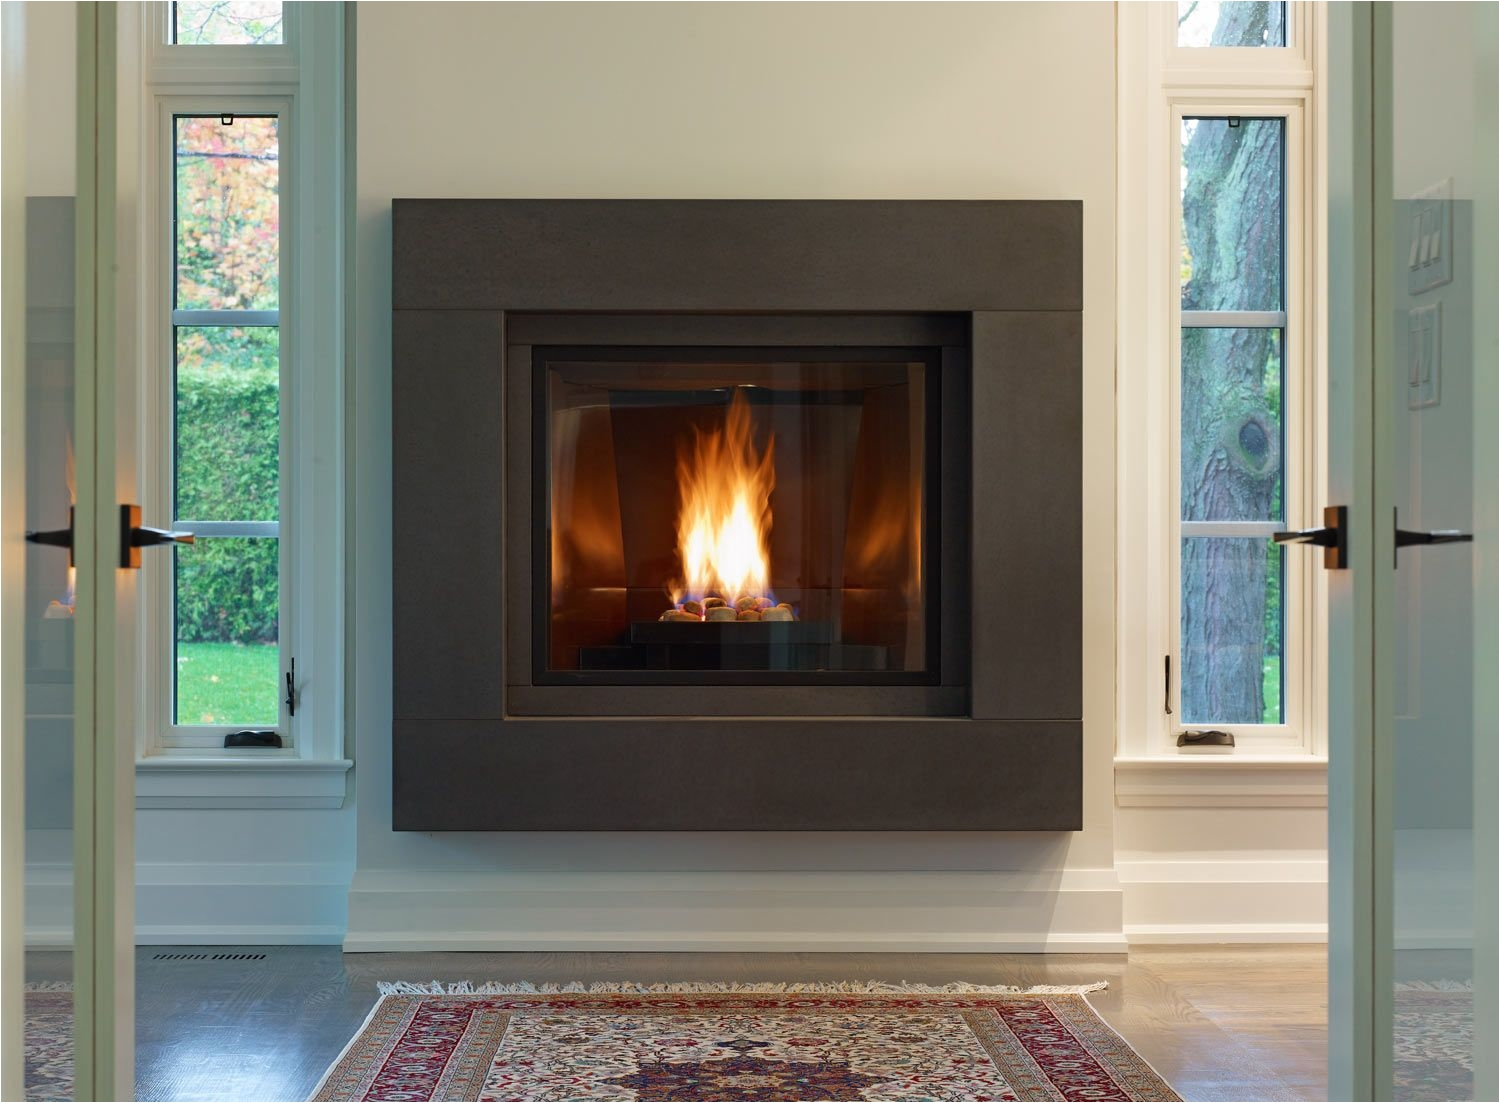 natural gas fireplace mantel modern fire pits and fireplaces paloform world fireplace of natural gas fireplace mantel